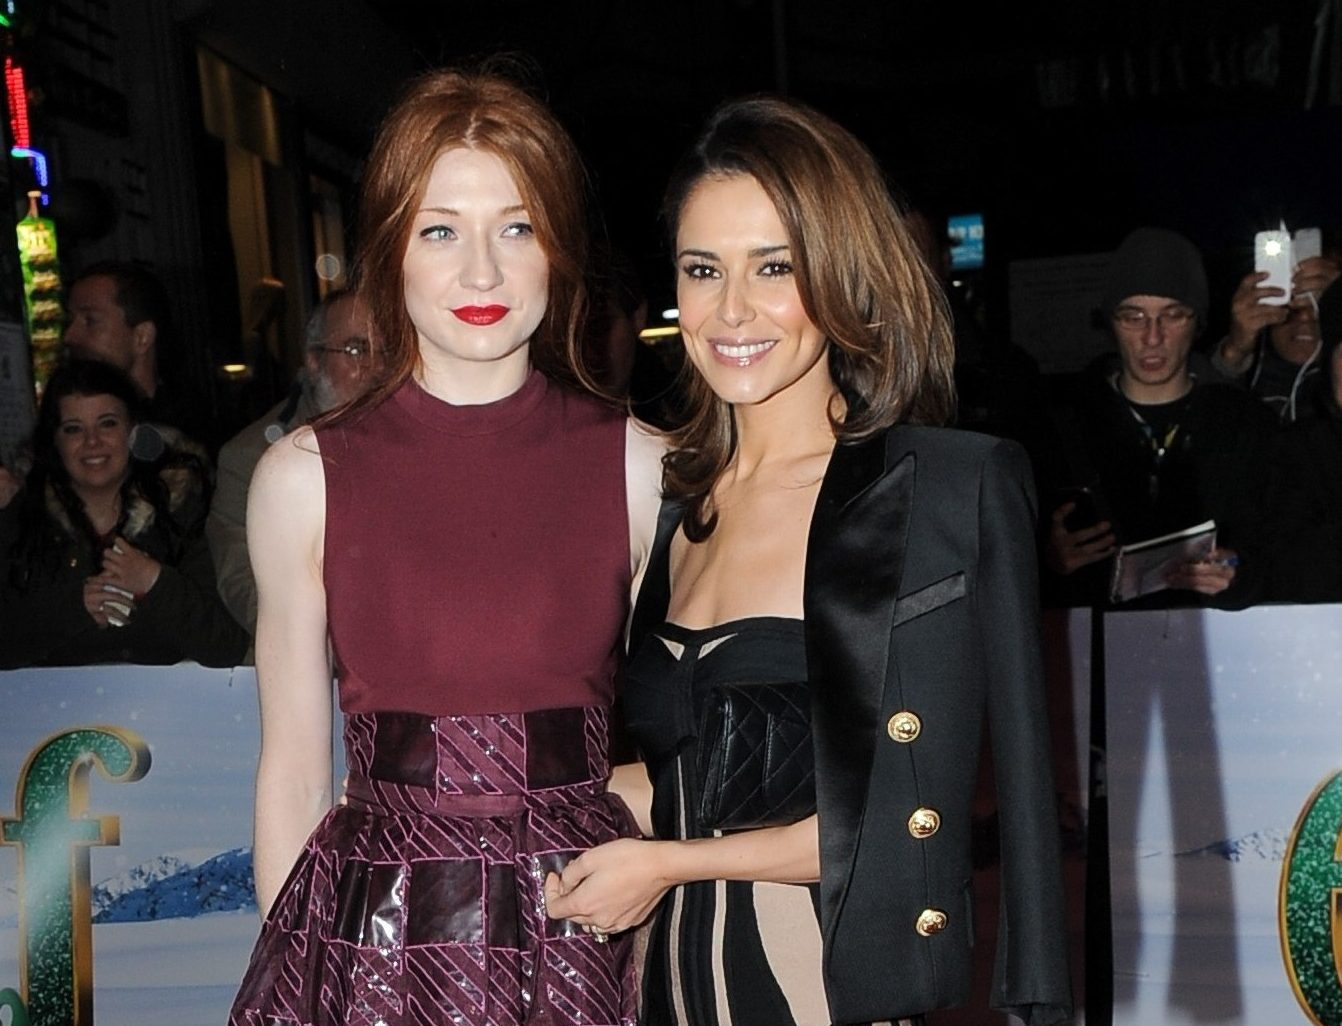 Nicola Roberts hits out at coverage of Cheryl and Liam Payne's split